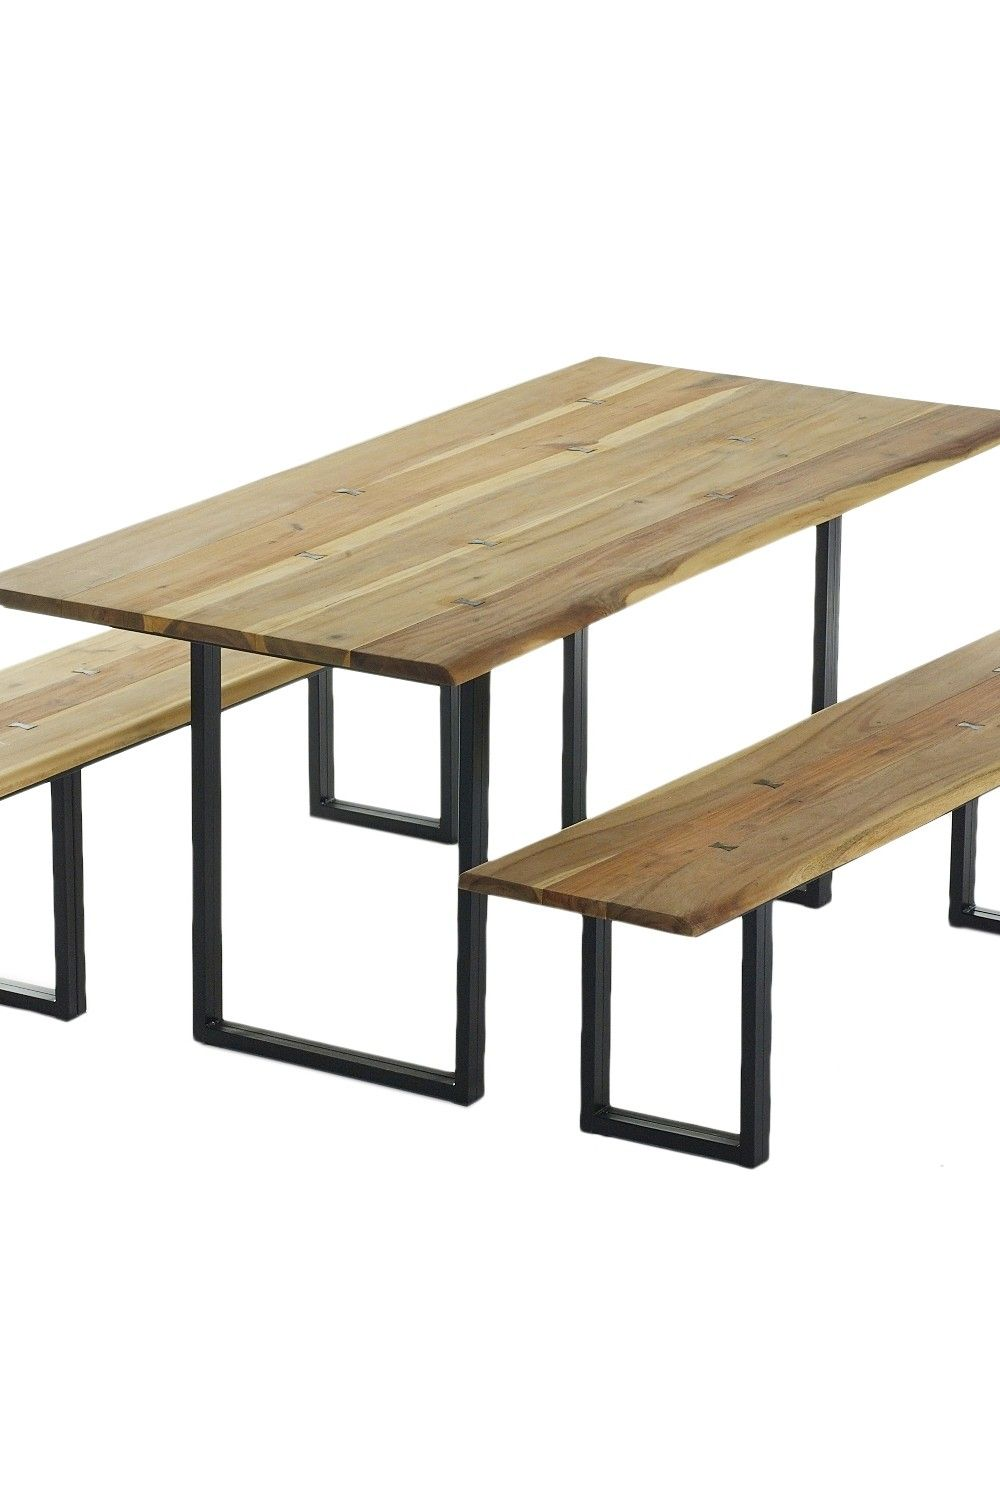 54 Beautiful Dining Table Bench Dining Table With Bench Industrial Style Dining Table Table And Bench Set